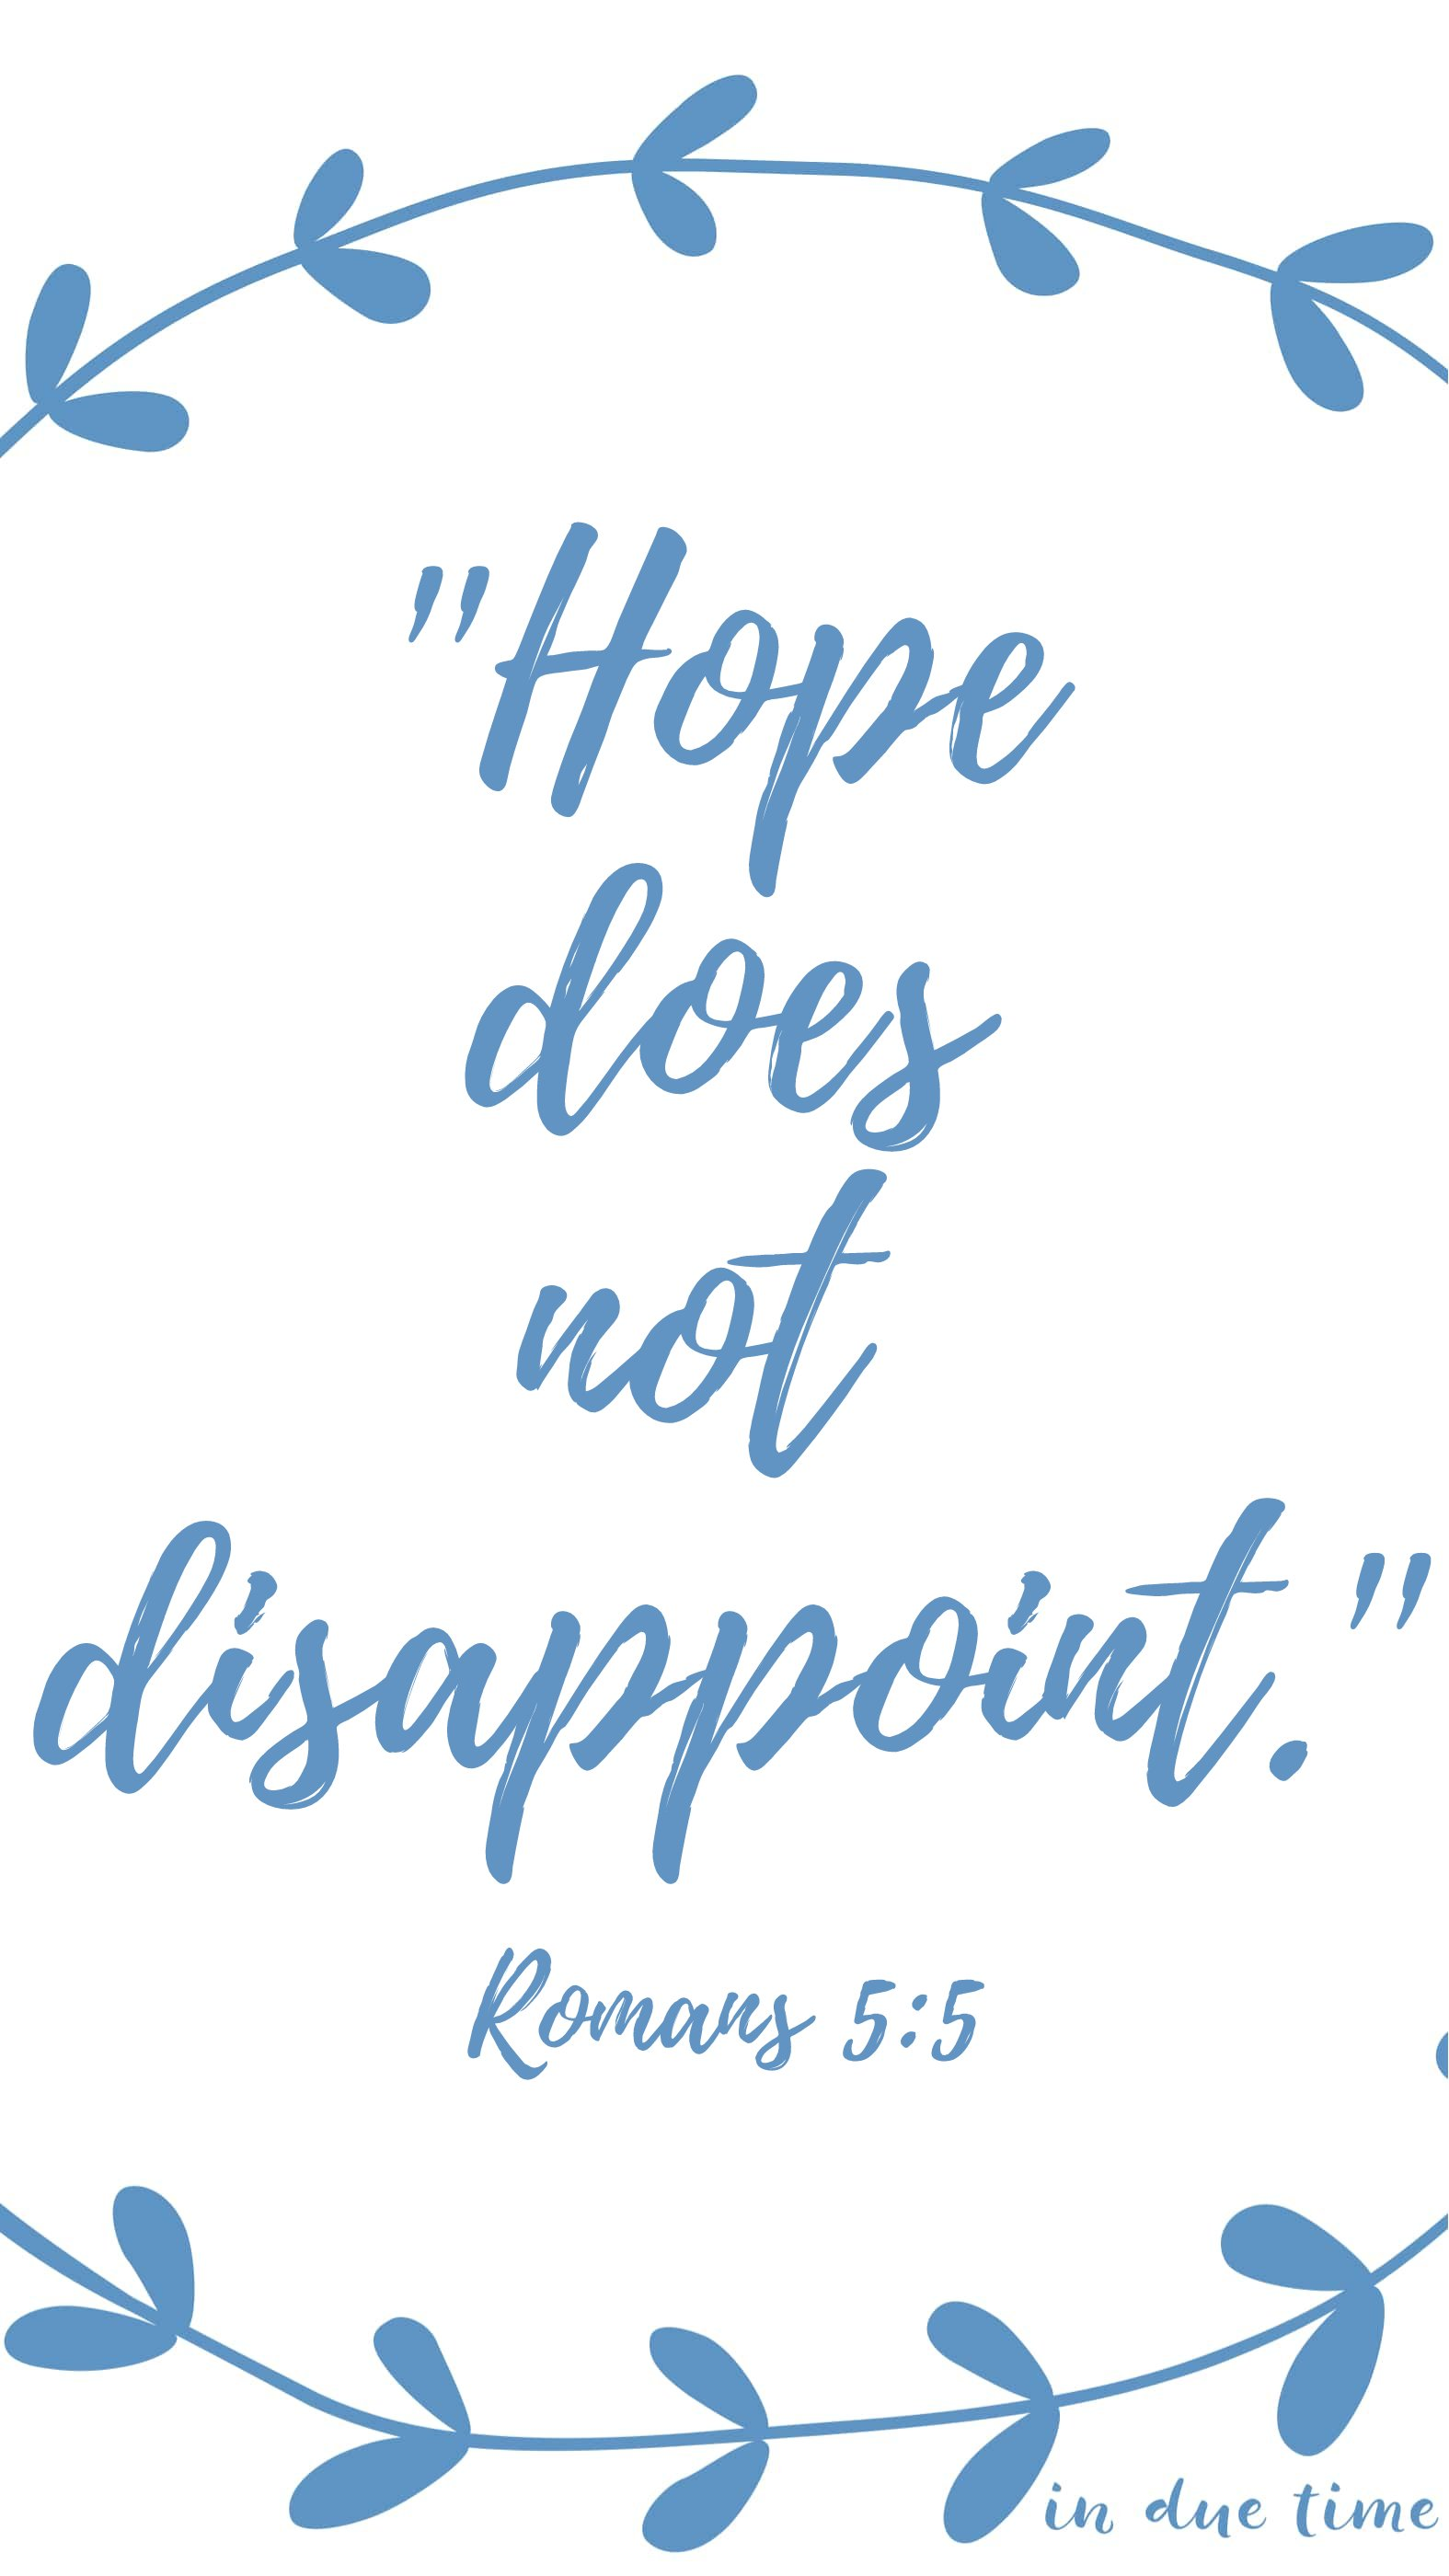 romans 5:5 hope does not disappoint